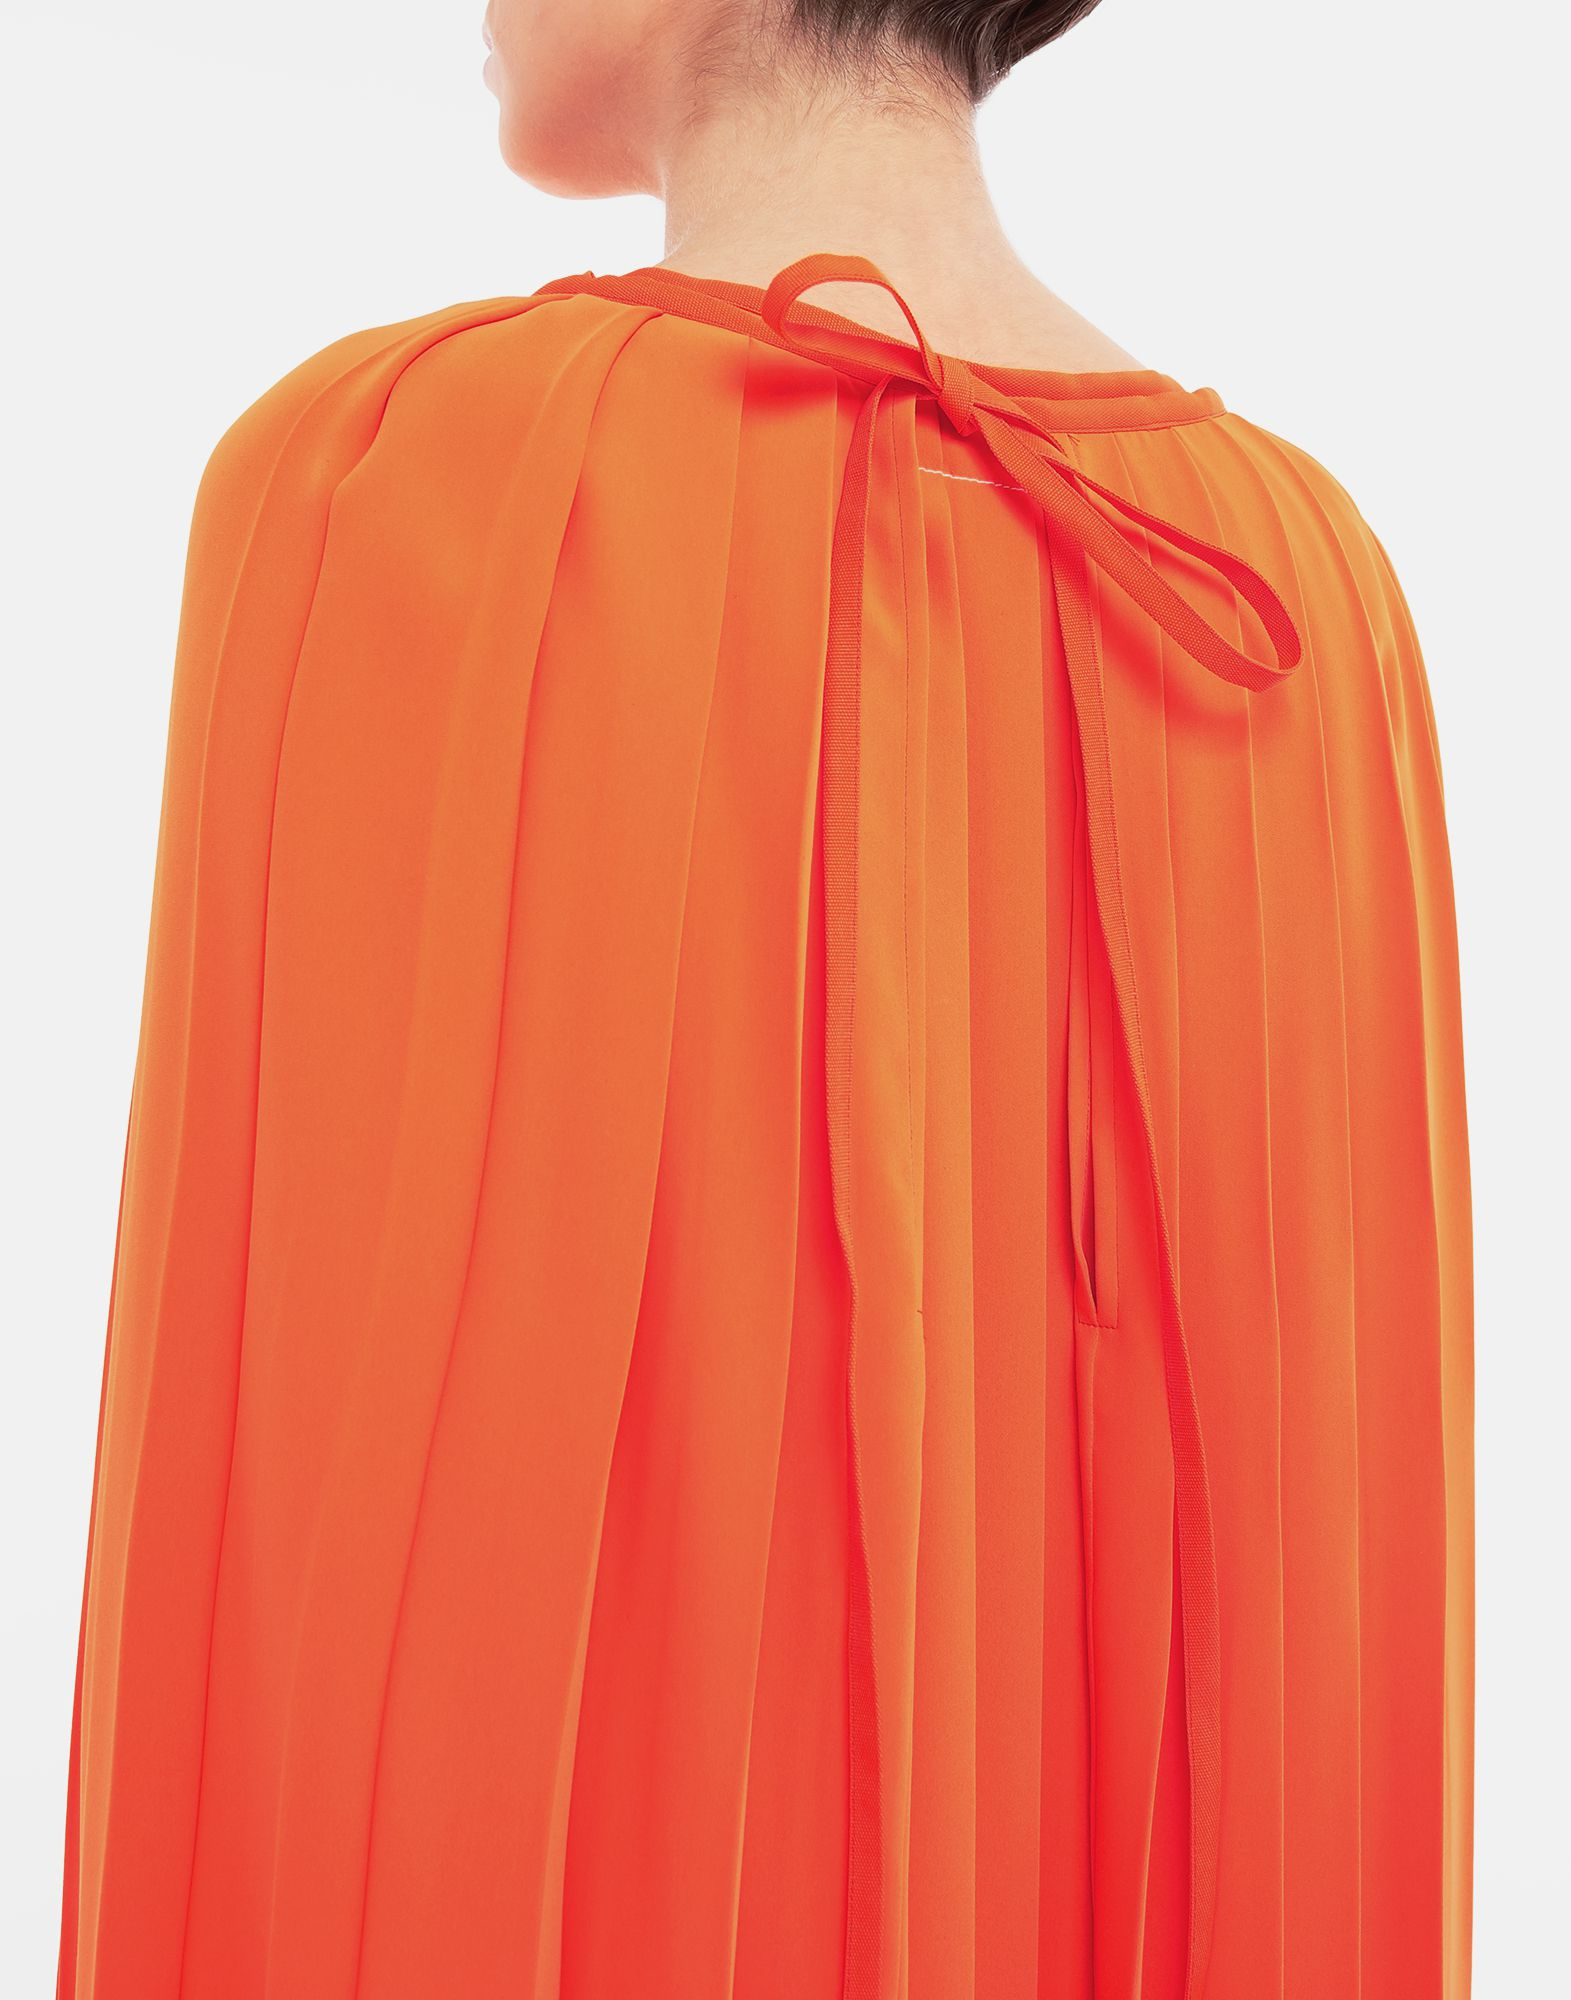 MM6 MAISON MARGIELA Pleated dress Dress Woman b